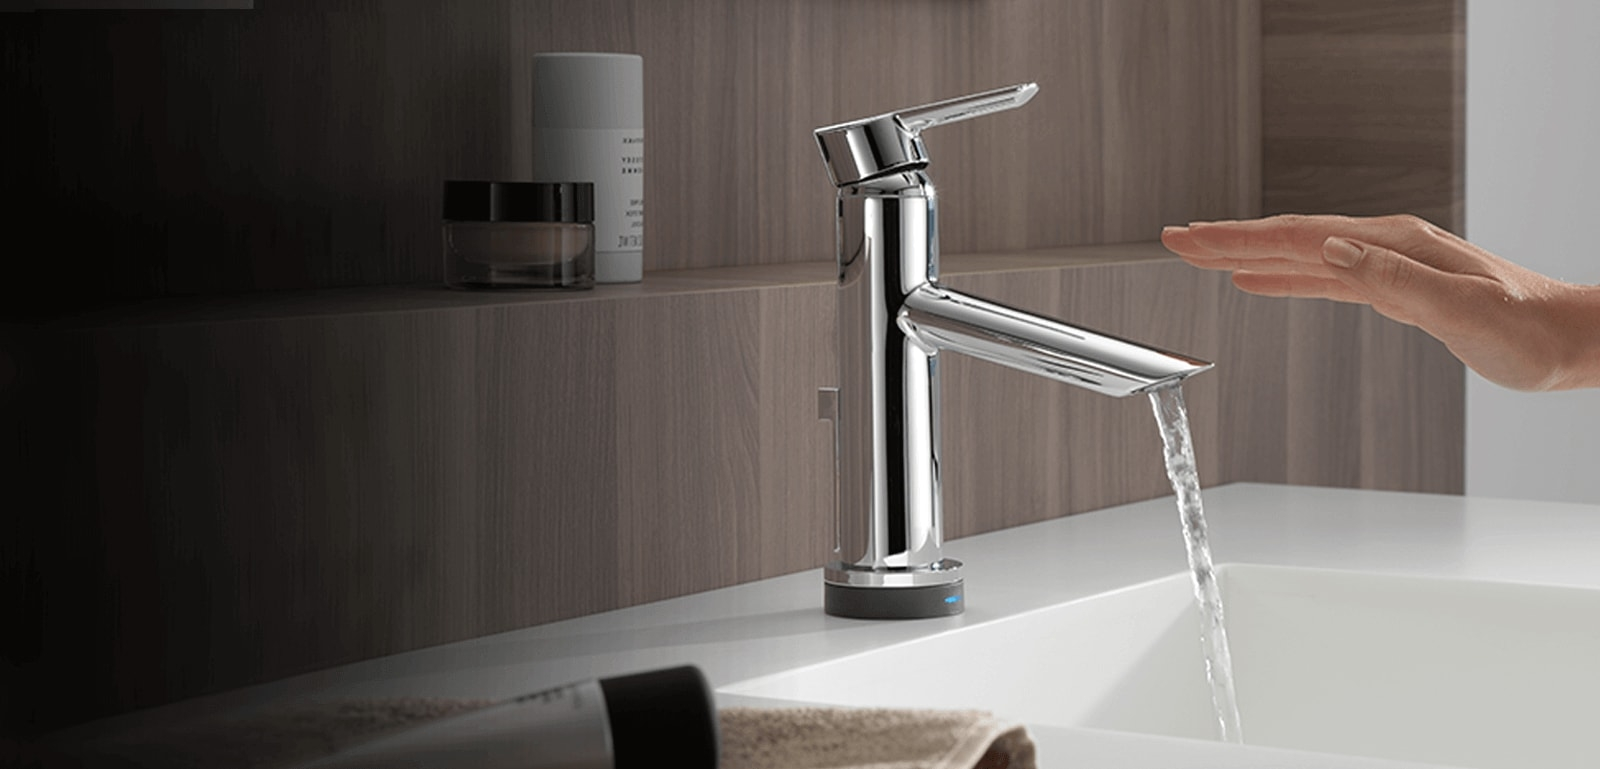 Ideas, delta touchless faucet bathroom delta touchless faucet bathroom touchless bathroom faucet with delta touch20xt delta faucet 1600 x 769  .